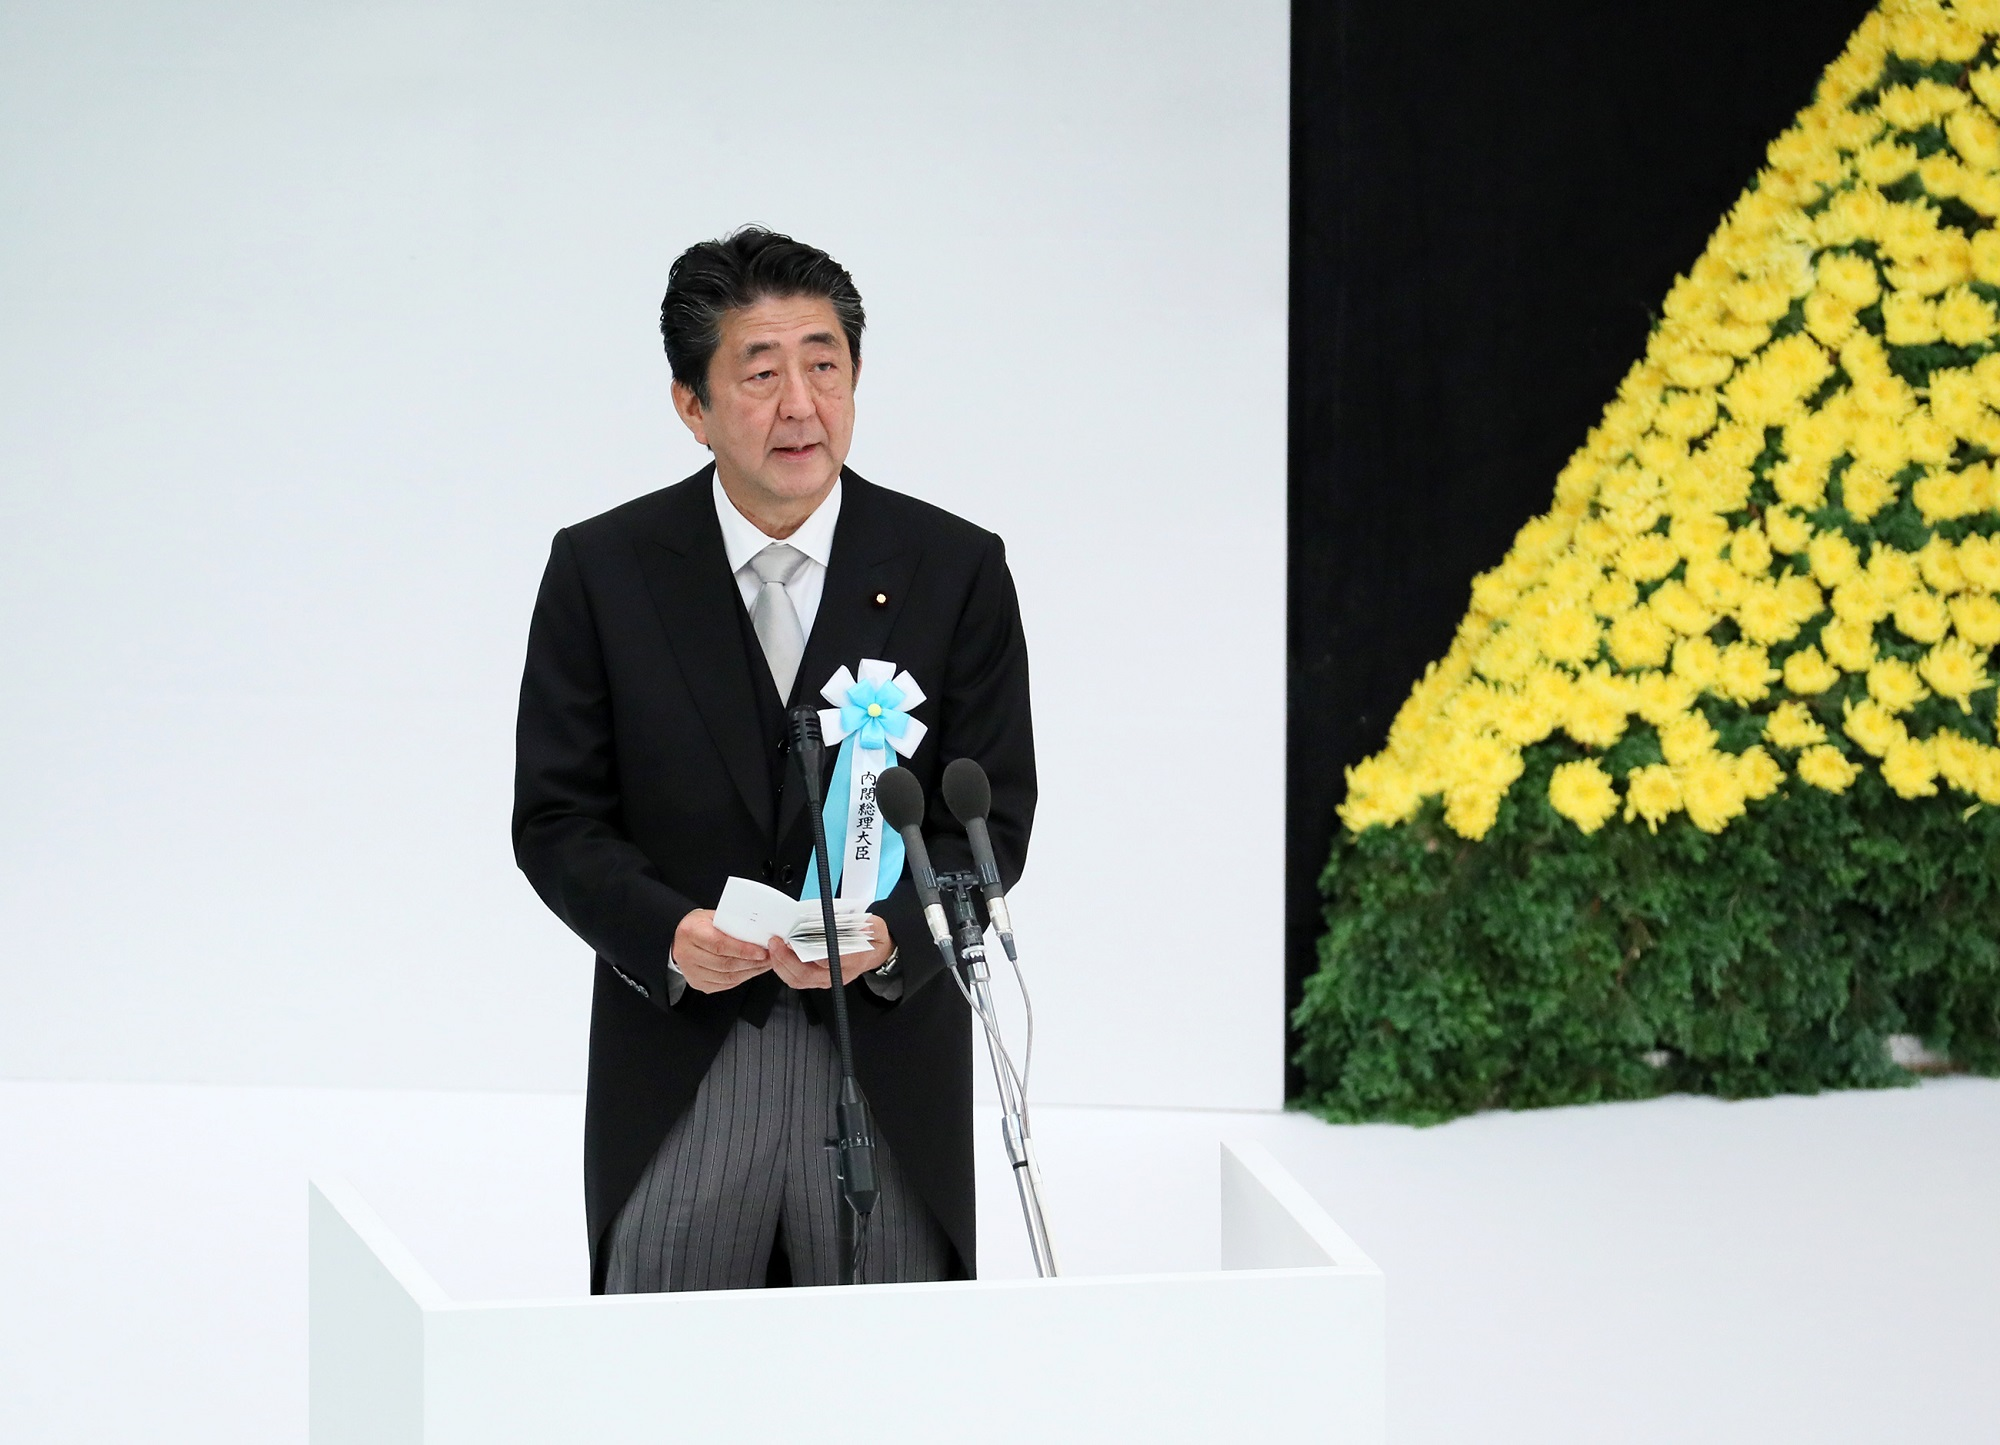 Photograph of the Prime Minister delivering an address (1)